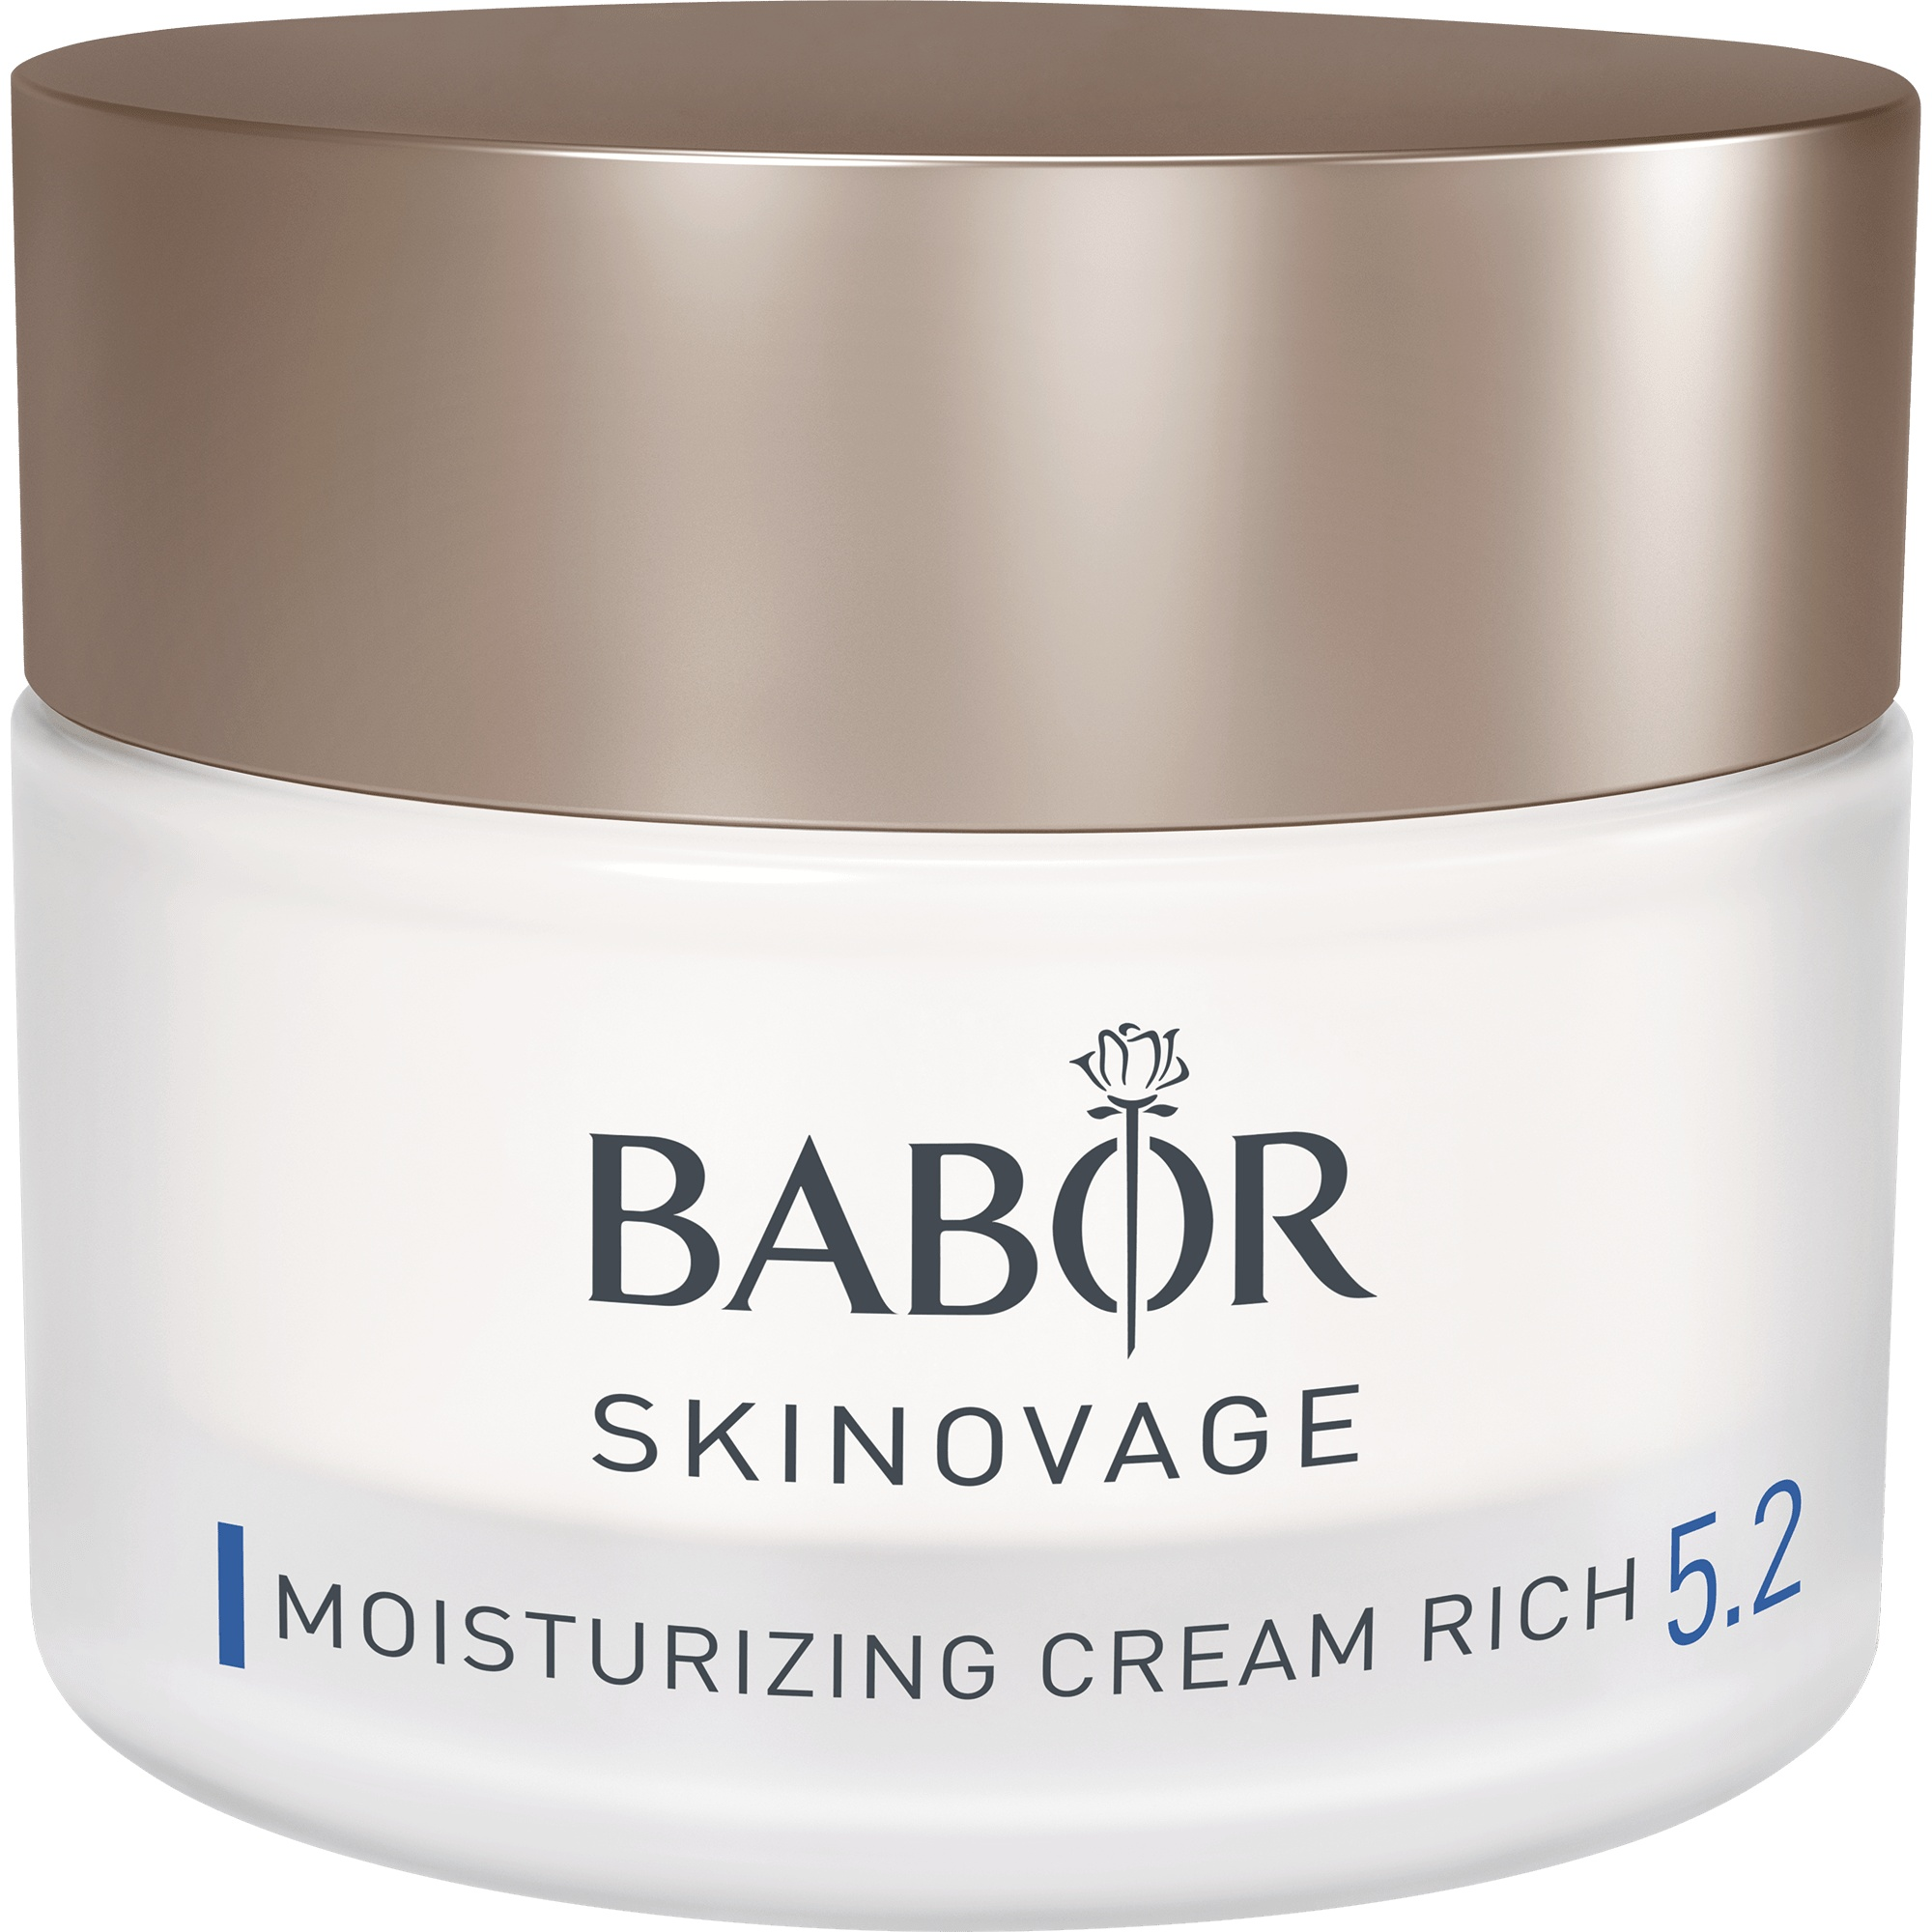 Skinovage Moisturizing Cream Rich 50 ml